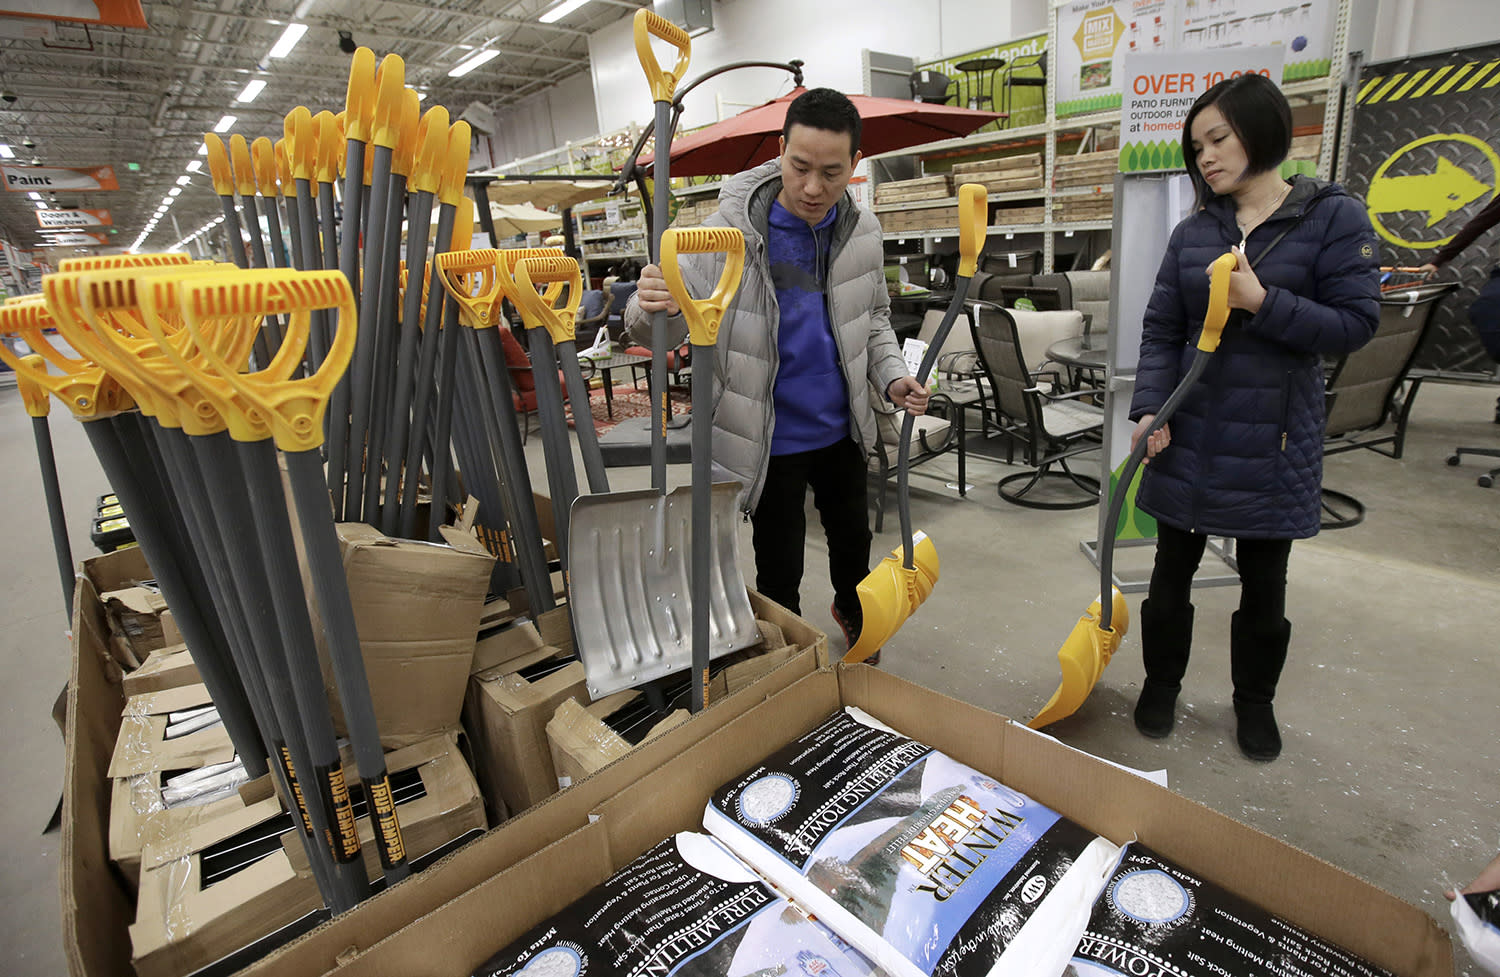 <p>Wei Chun Lin, left, and his wife Mei Chen, right, both of Quincy, Mass., examine snow shovels, Monday, March 13, 2017, at a hardware store, in Quincy. Weather forecasters say a nor'easter moving toward Massachusetts could bring about two feet of snow and high winds to central parts of the state Tuesday. (Steven Senne/AP) </p>